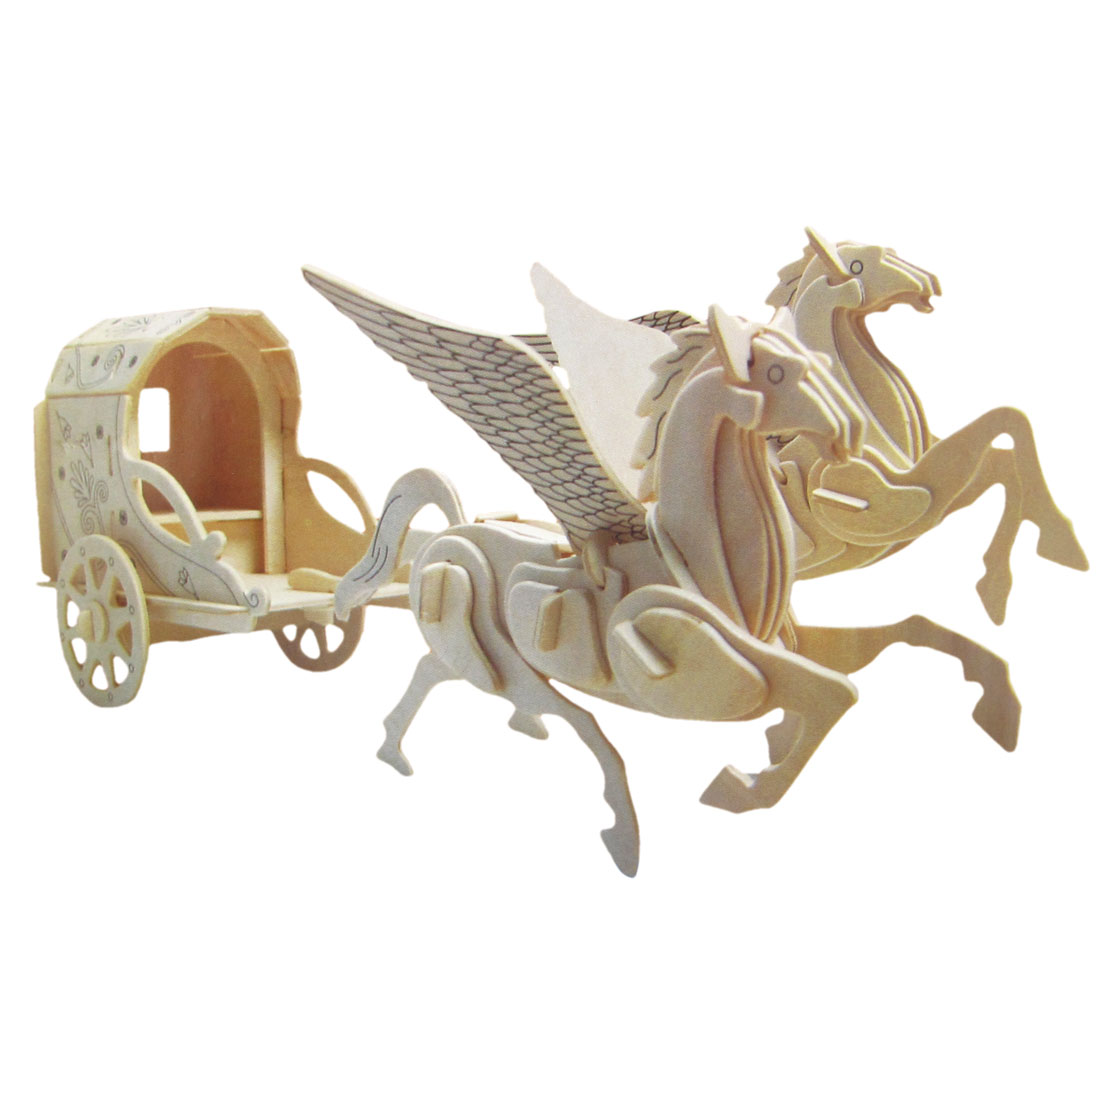 3D Pegasus Carriage Model Wooden Construction Kit Puzzle Toy for Kids